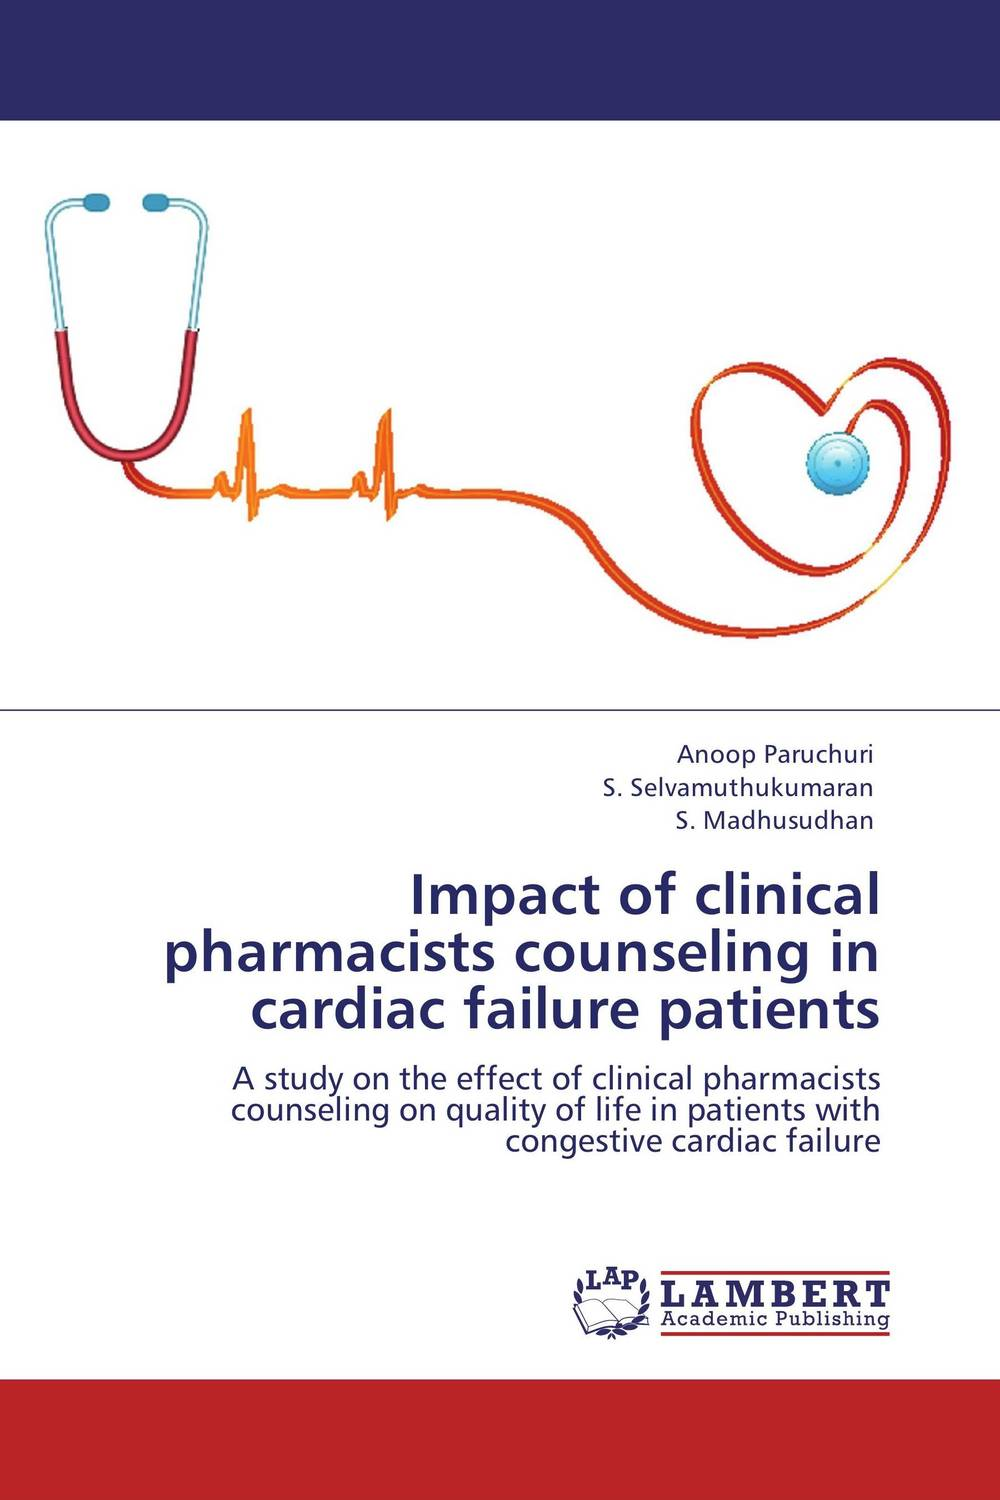 Impact of clinical pharmacists counseling in cardiac failure patients retinopathy among undiagnosed patients of pakistan